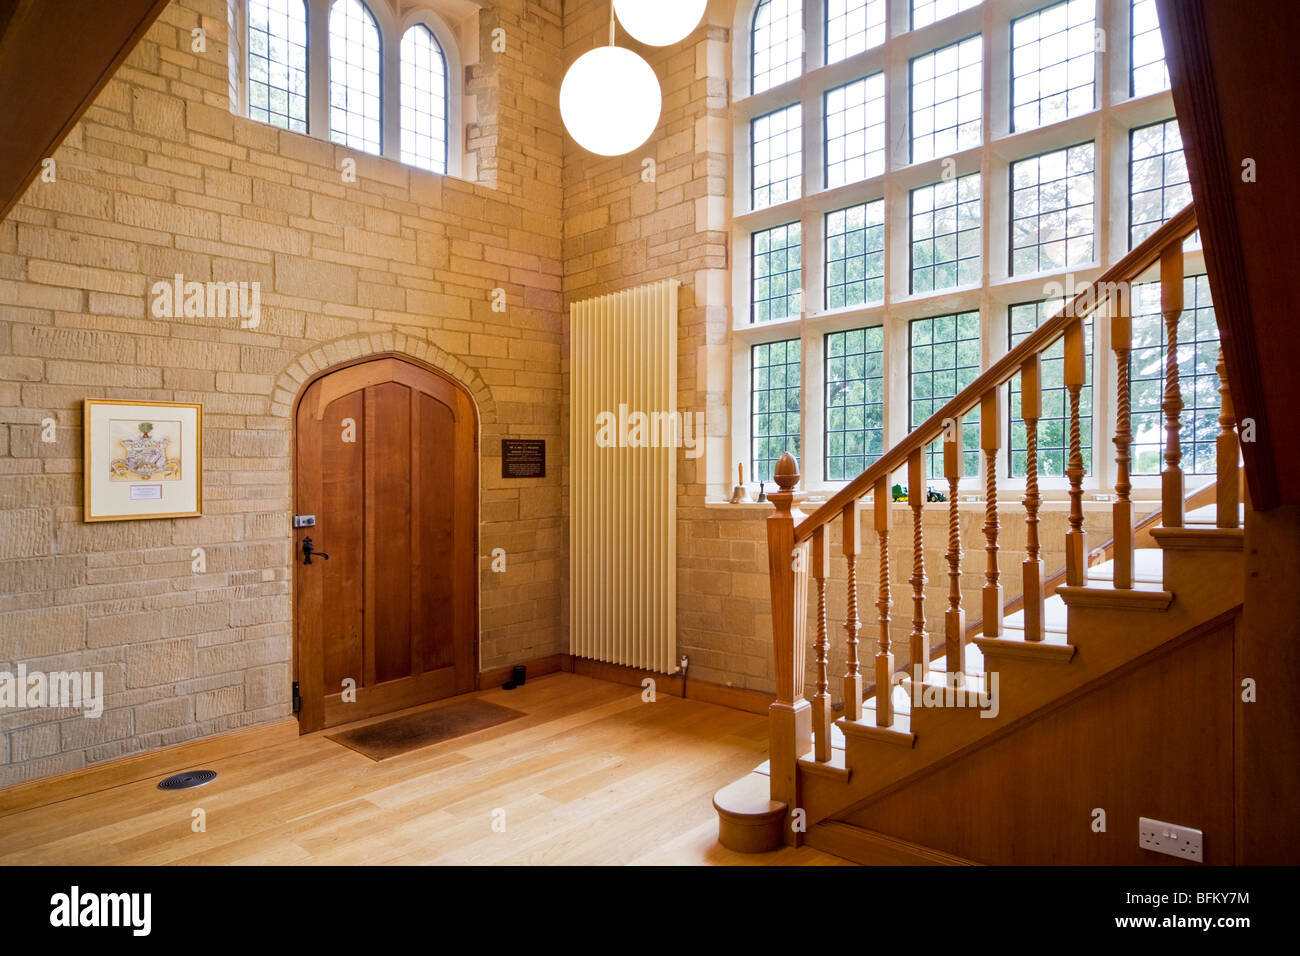 Doors wood doors 0152 01 preview jpg - Stock Photo Wooden Entrance Door And Staircase And Stone Hallway With Mullioned Windows In A Grand Modern Contemporary English House Uk